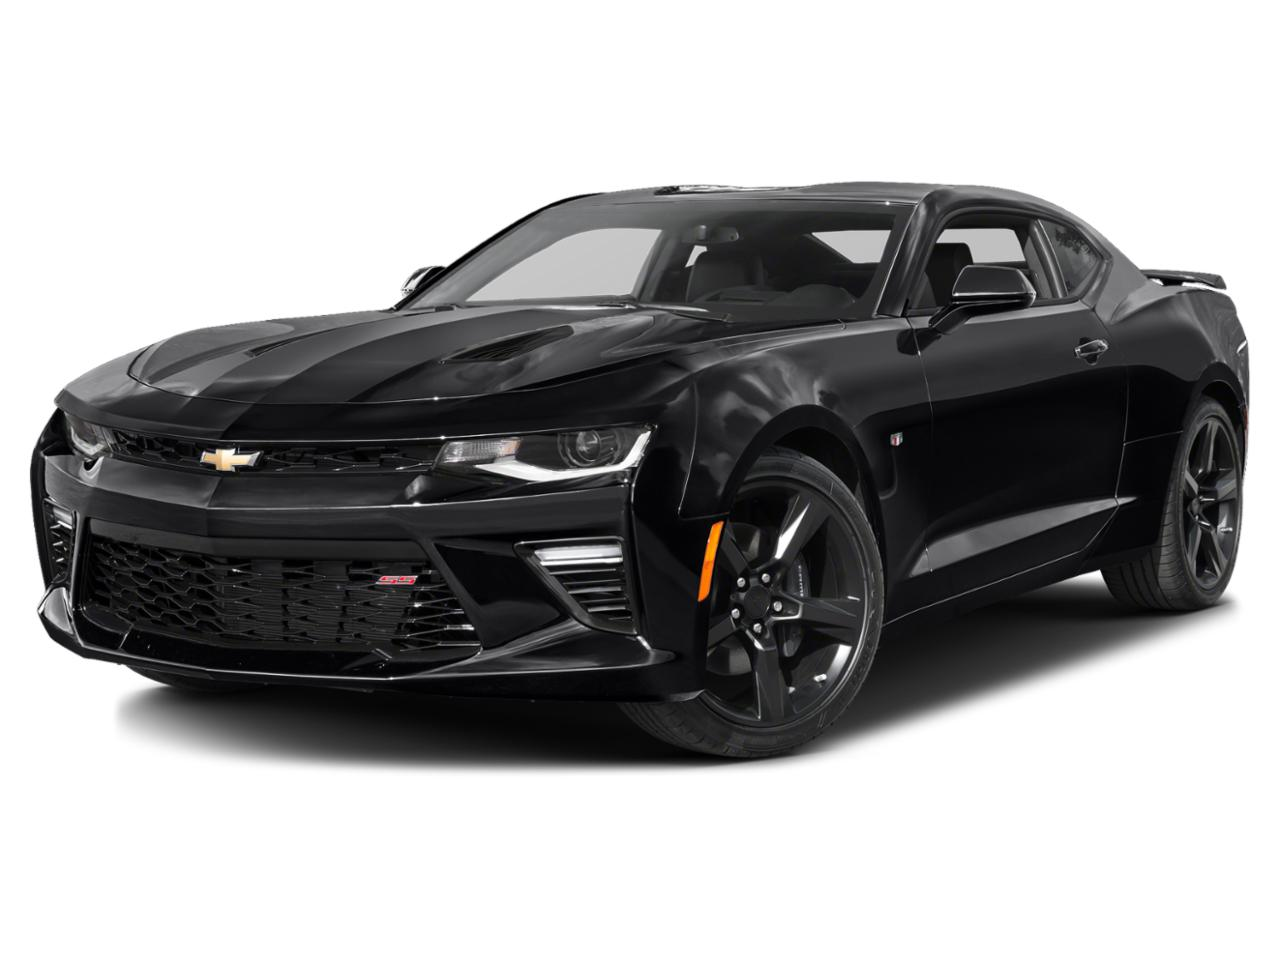 2018 Chevrolet Camaro Vehicle Photo in Henderson, NV 89014